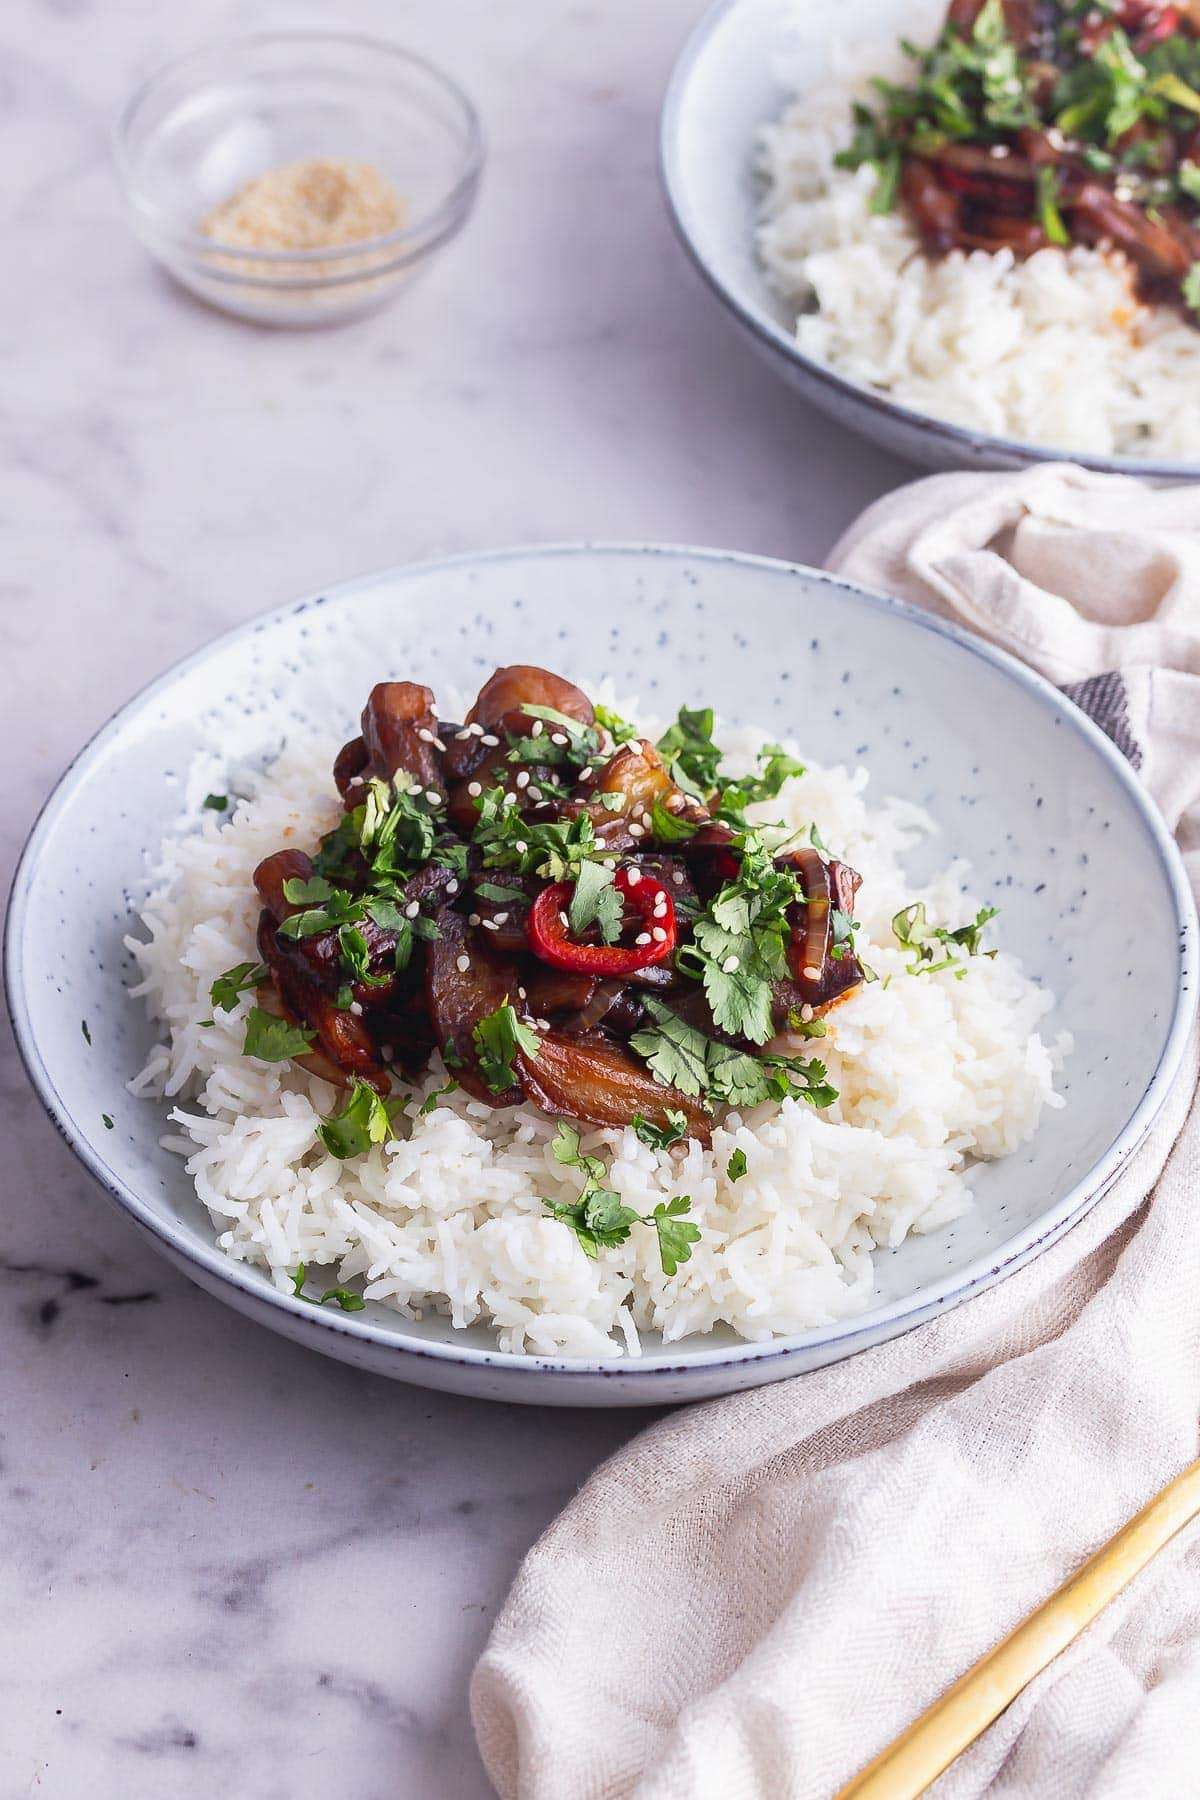 Blue bowl of stir fried aubergine on a marble background